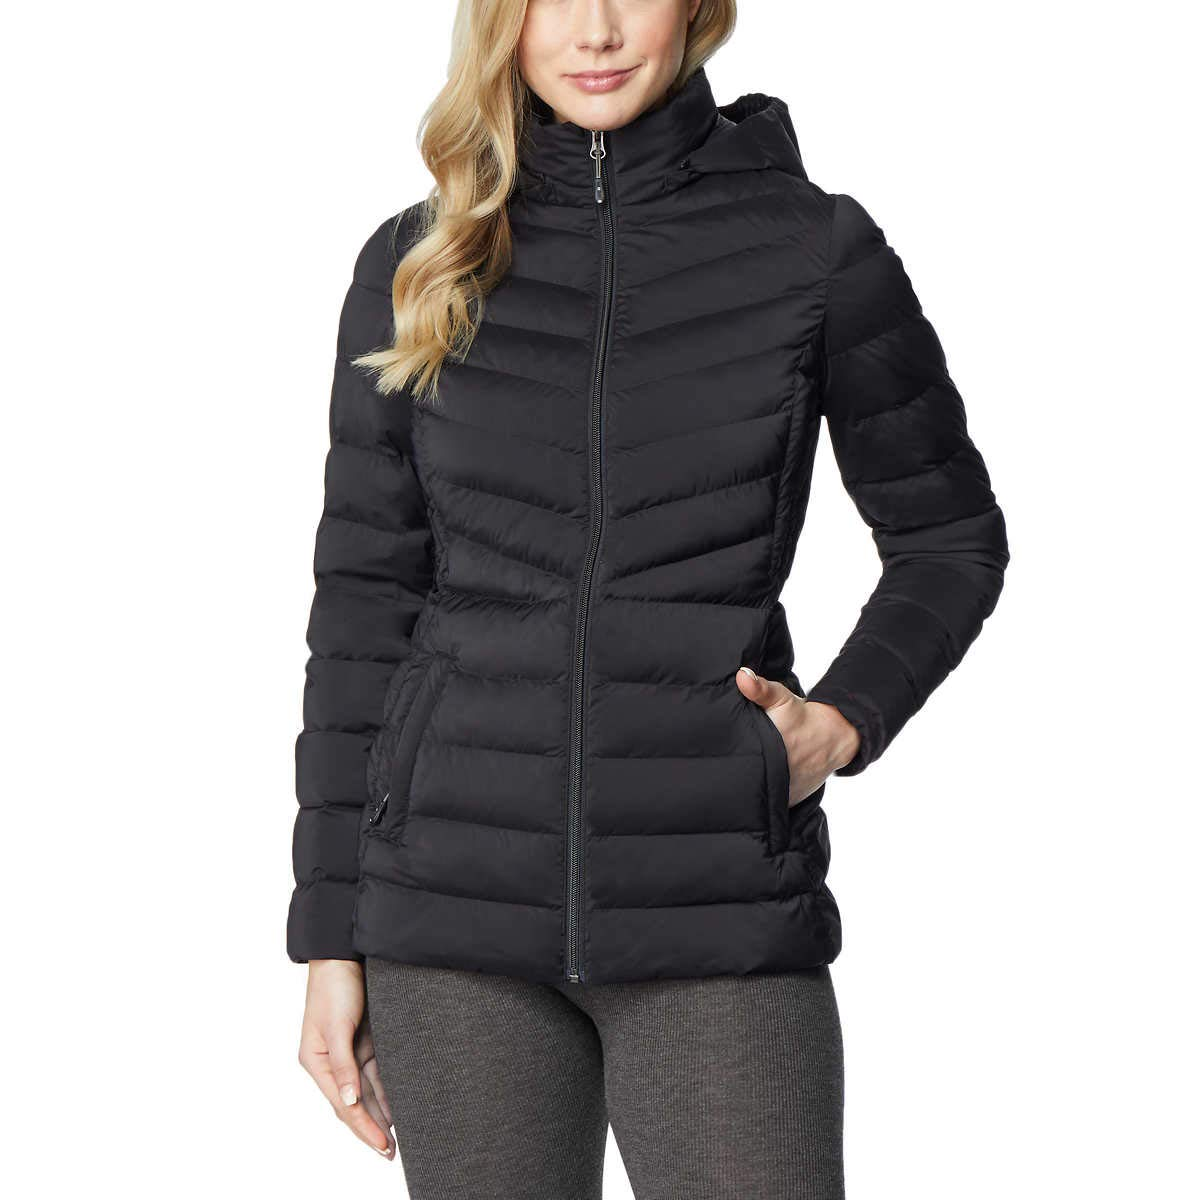 32 Degrees Heat Womens Hooded 4-Way Stretch Jacket